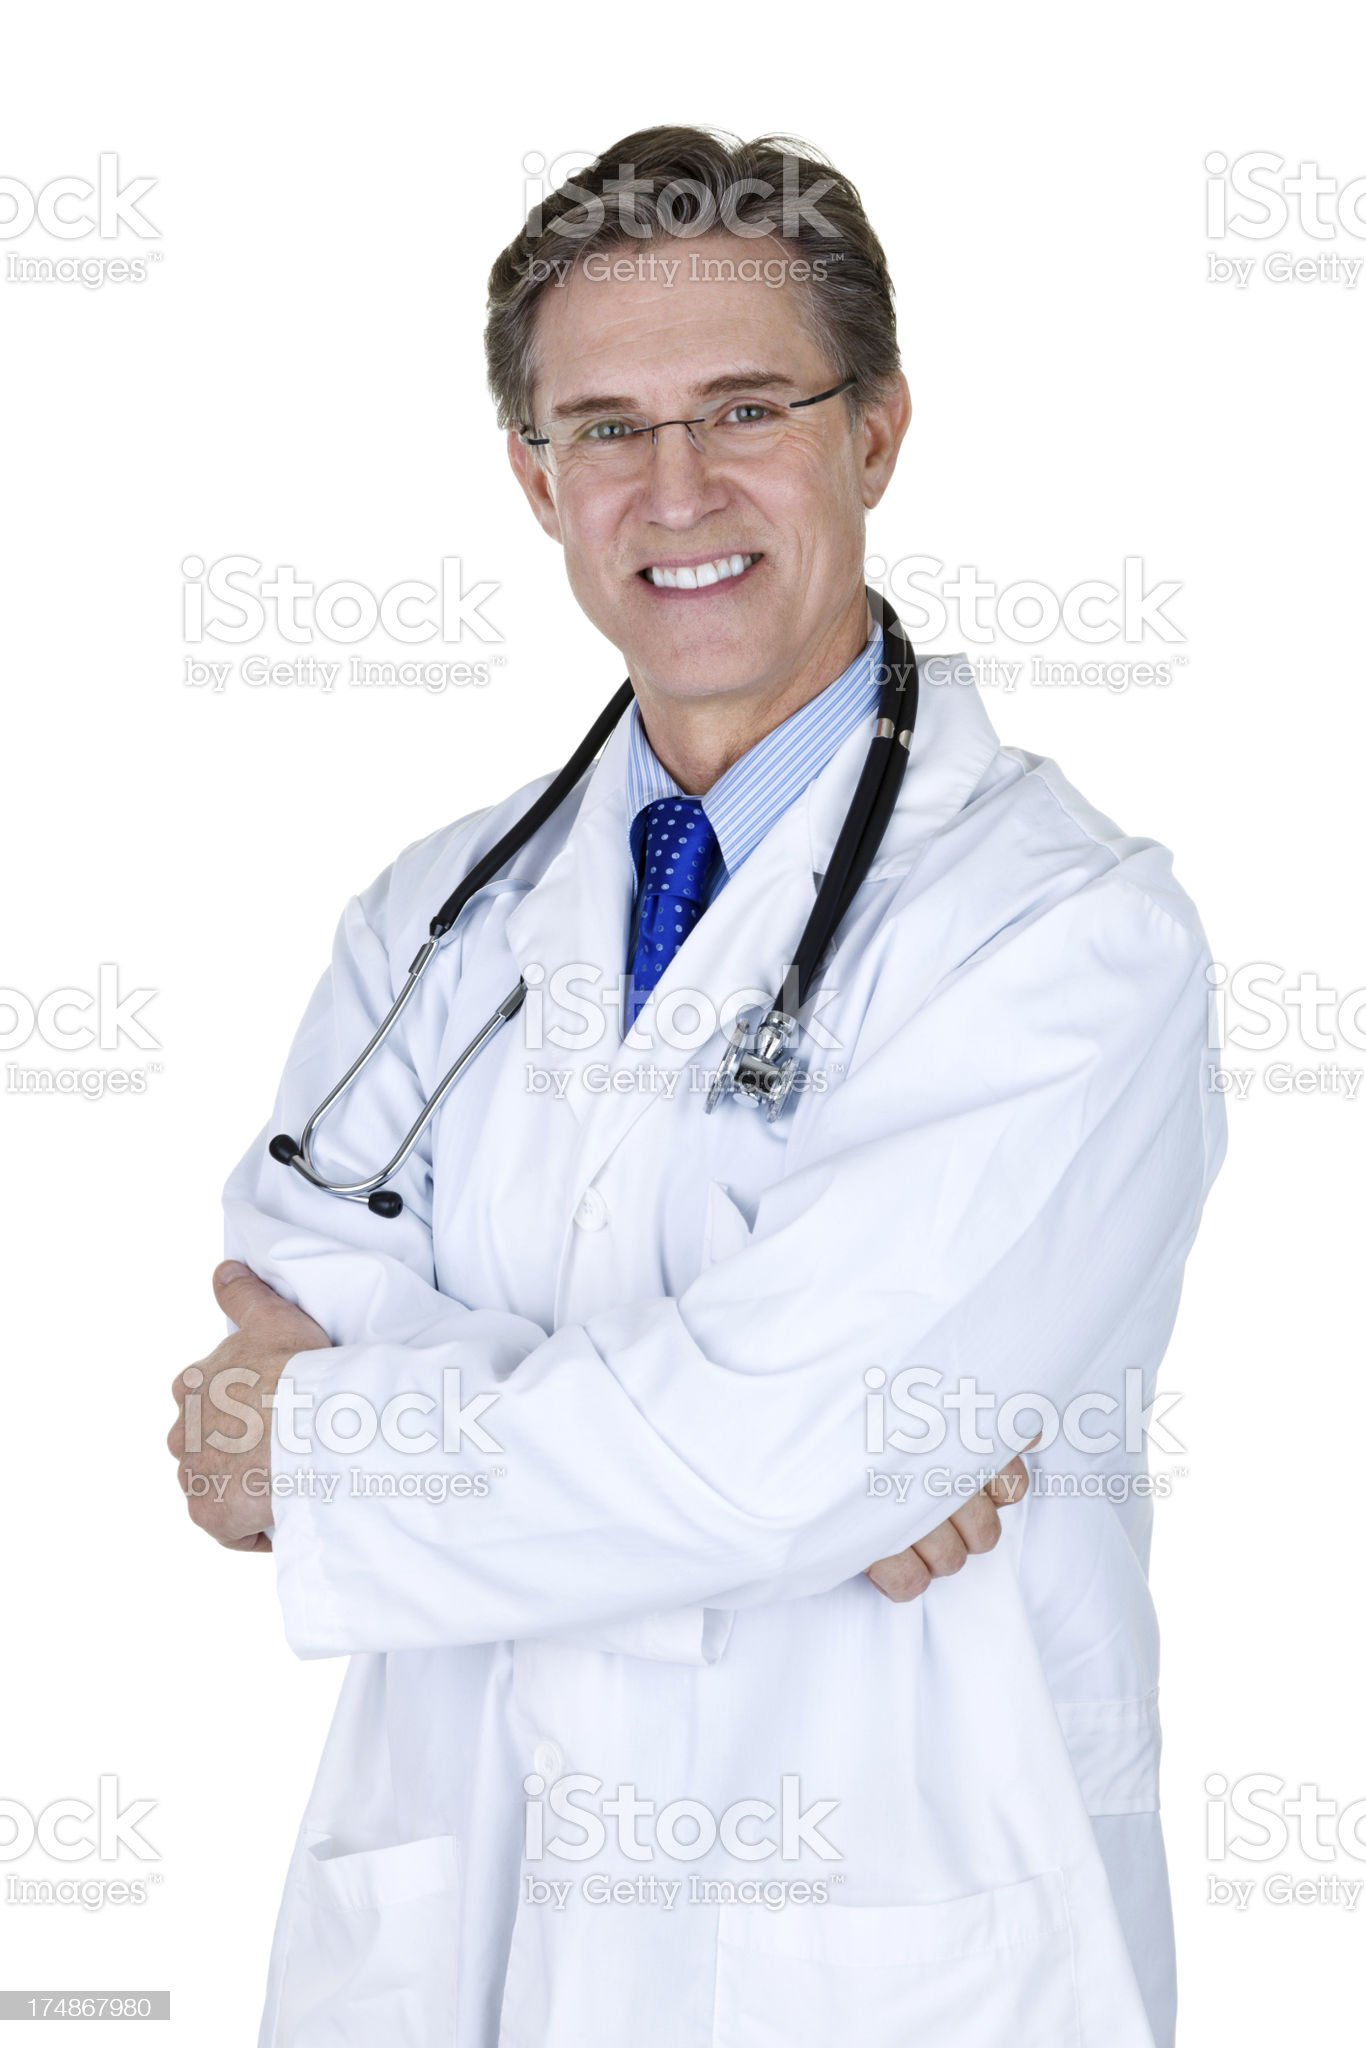 Mature Doctor royalty-free stock photo